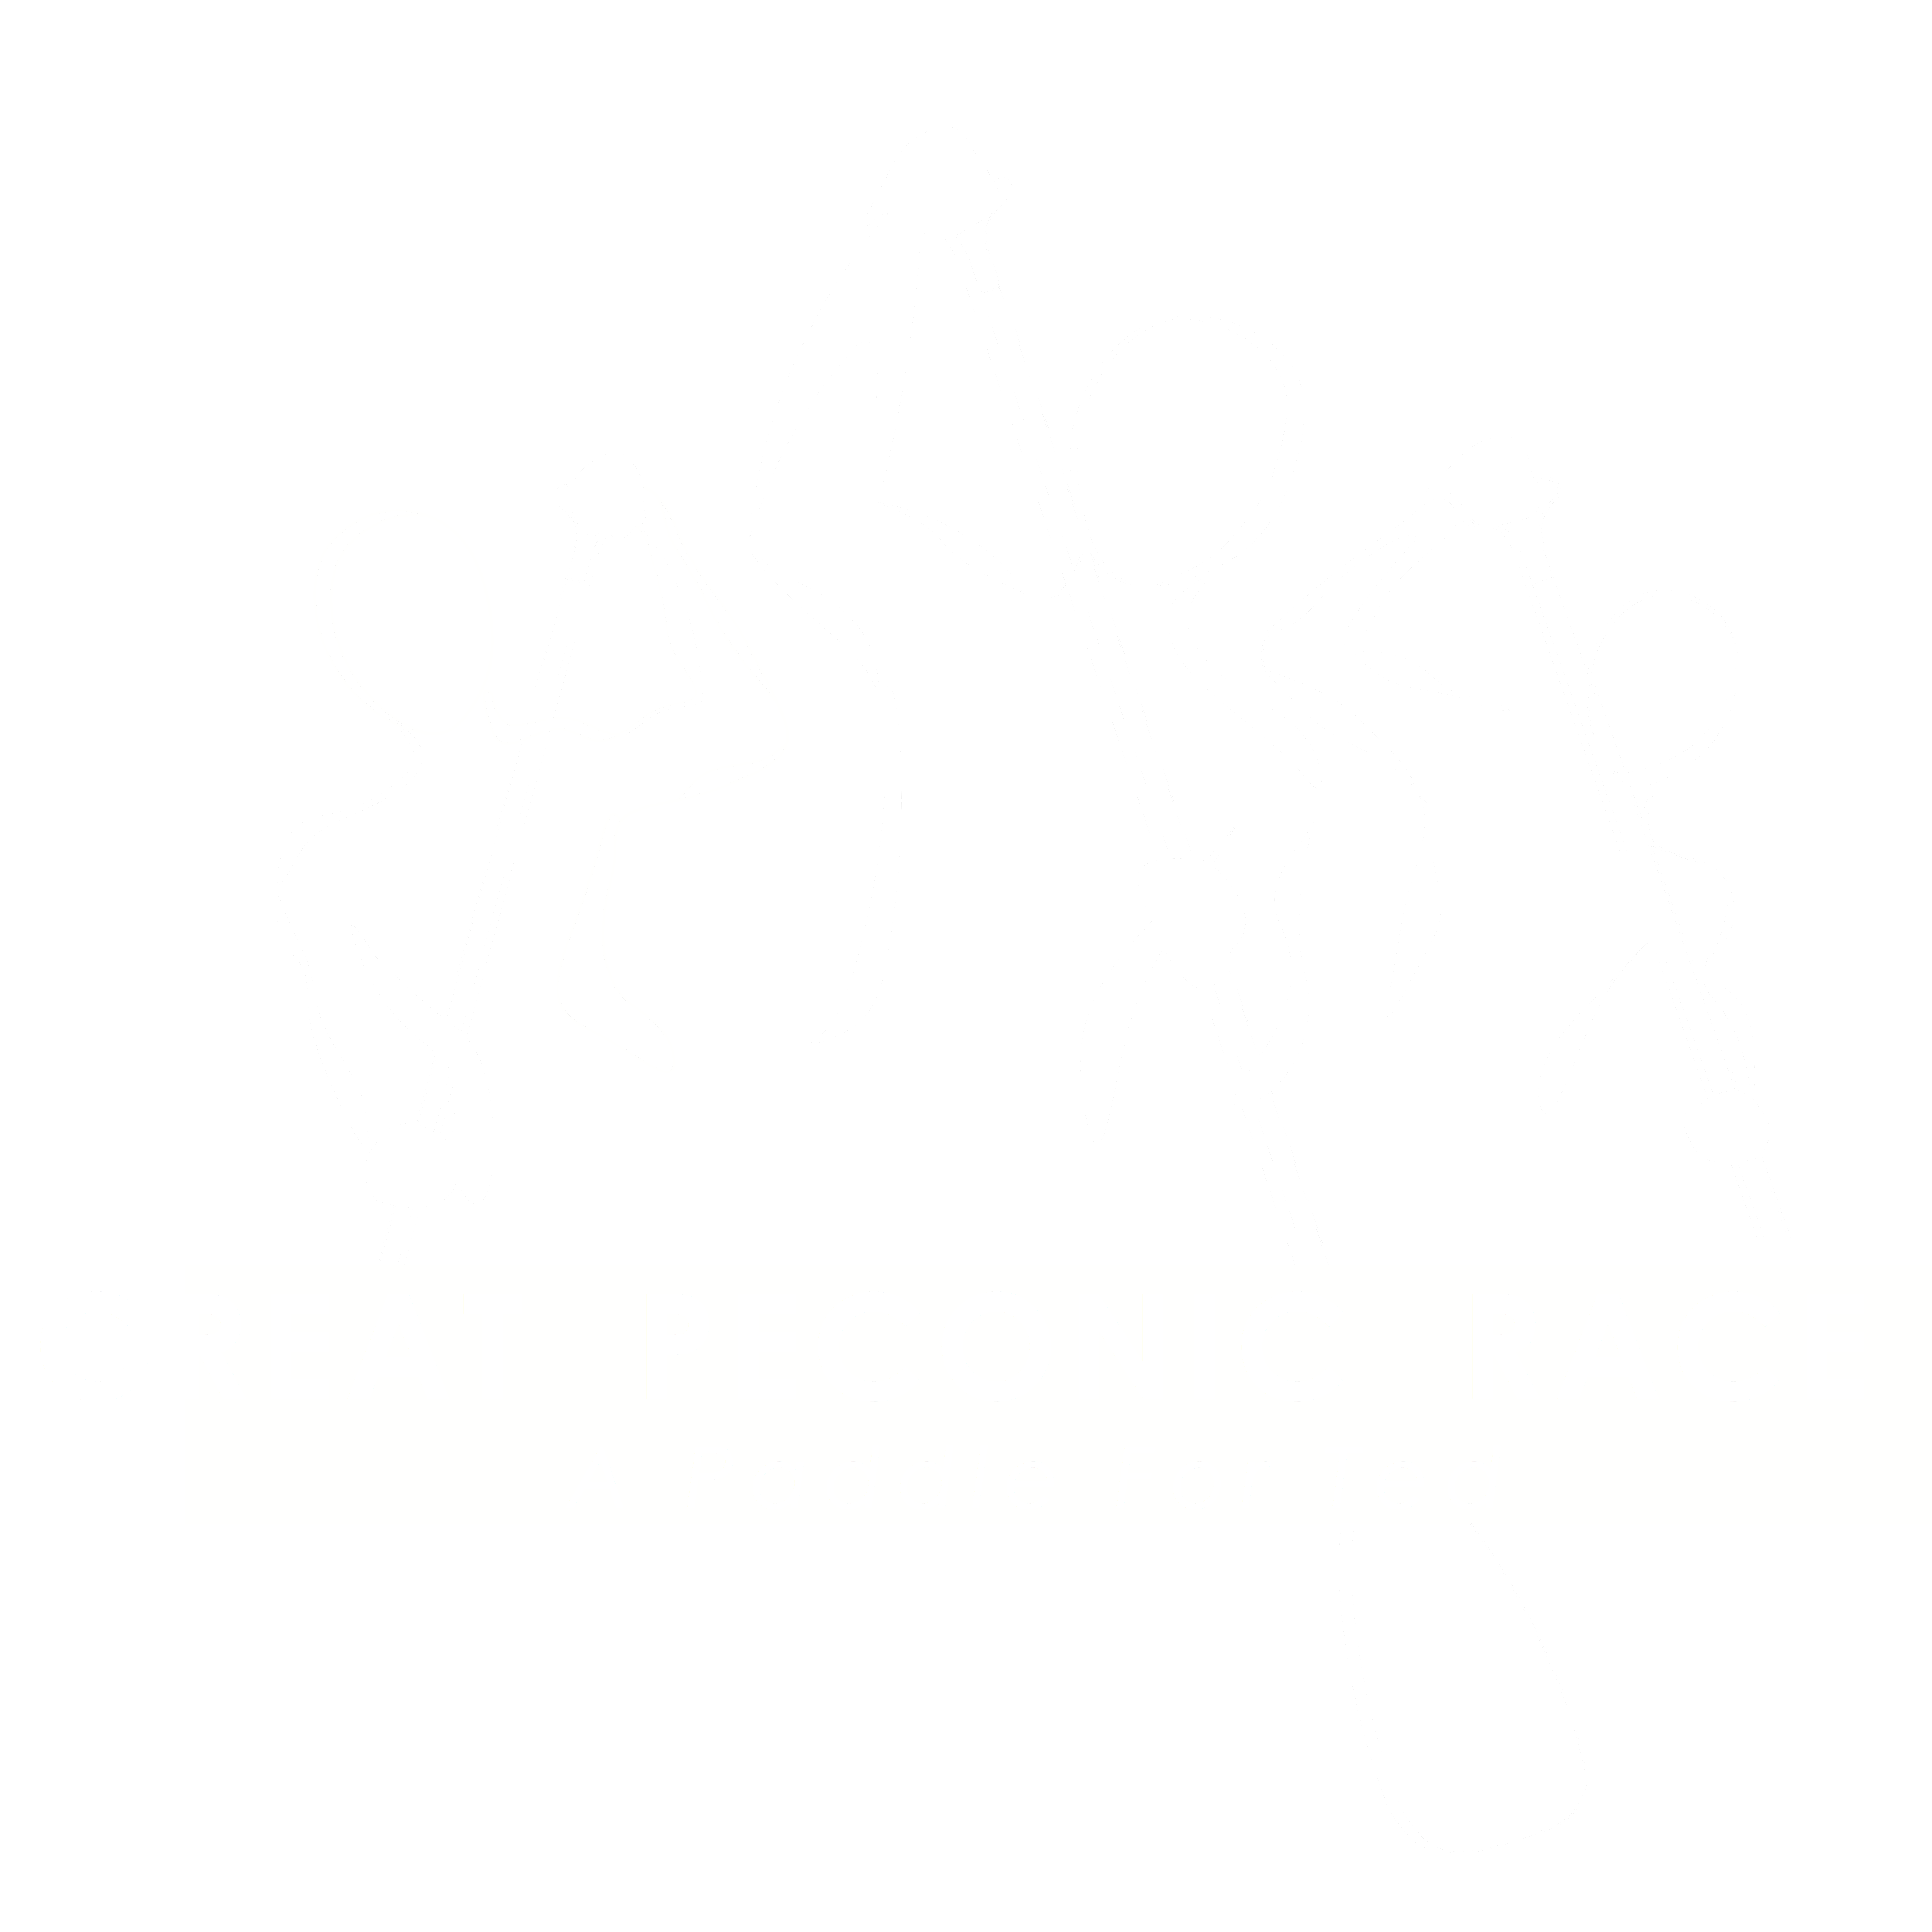 Great Peconic Race is an advanced recreational and elite paddle race circumnavigating Shelter Island, NY, located between the North and South Forks of Long Island.